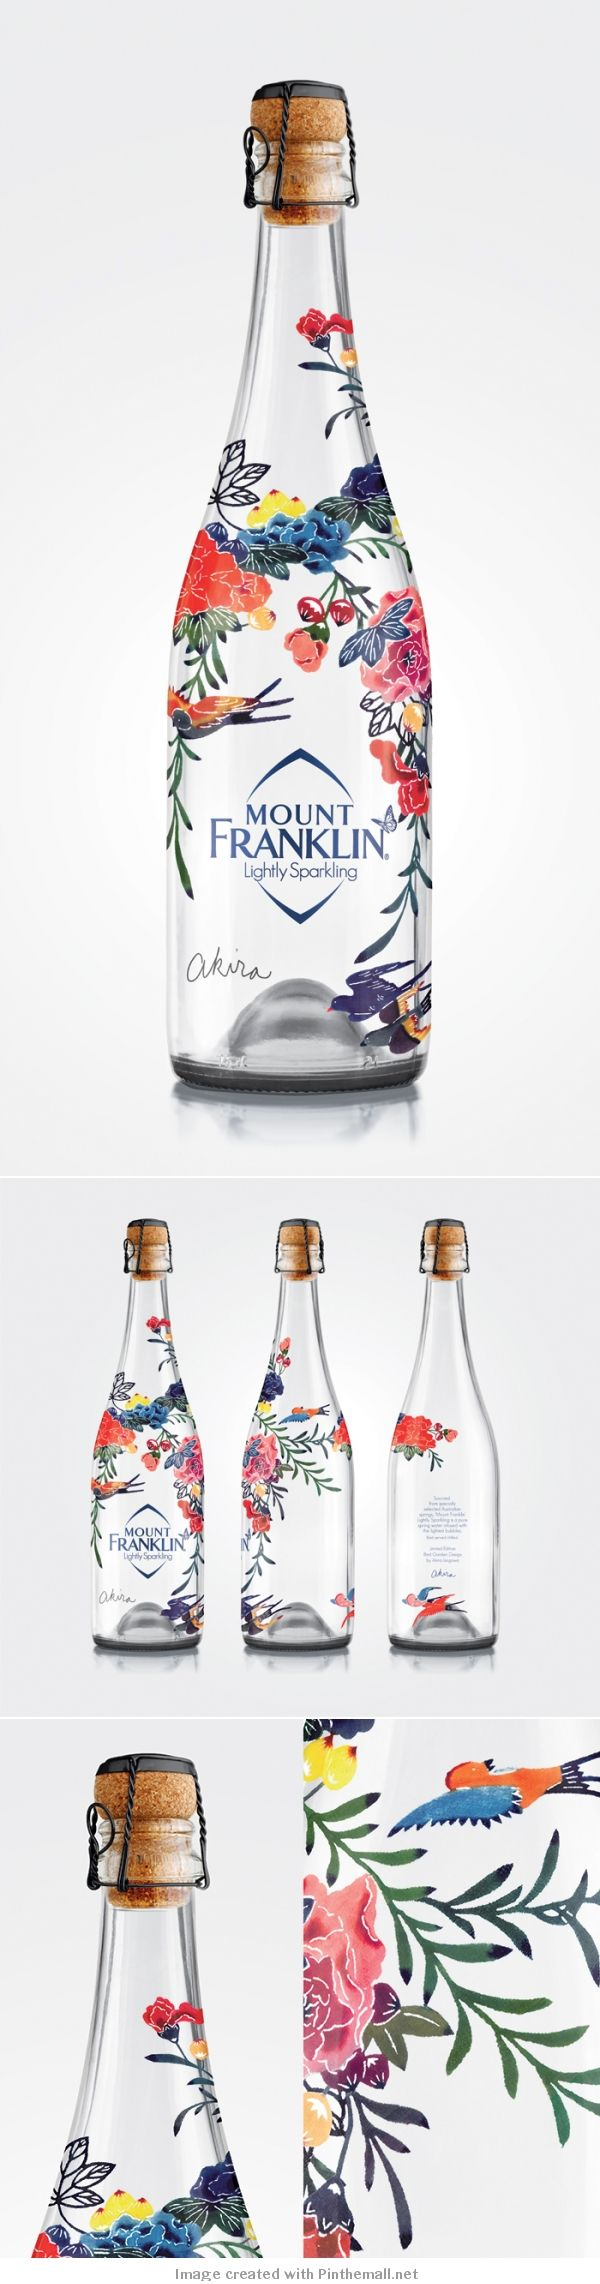 Mount Franklin Lightly Sparkling | Bottle packaging design | Akira isogawa - created via http://pinthemall.net